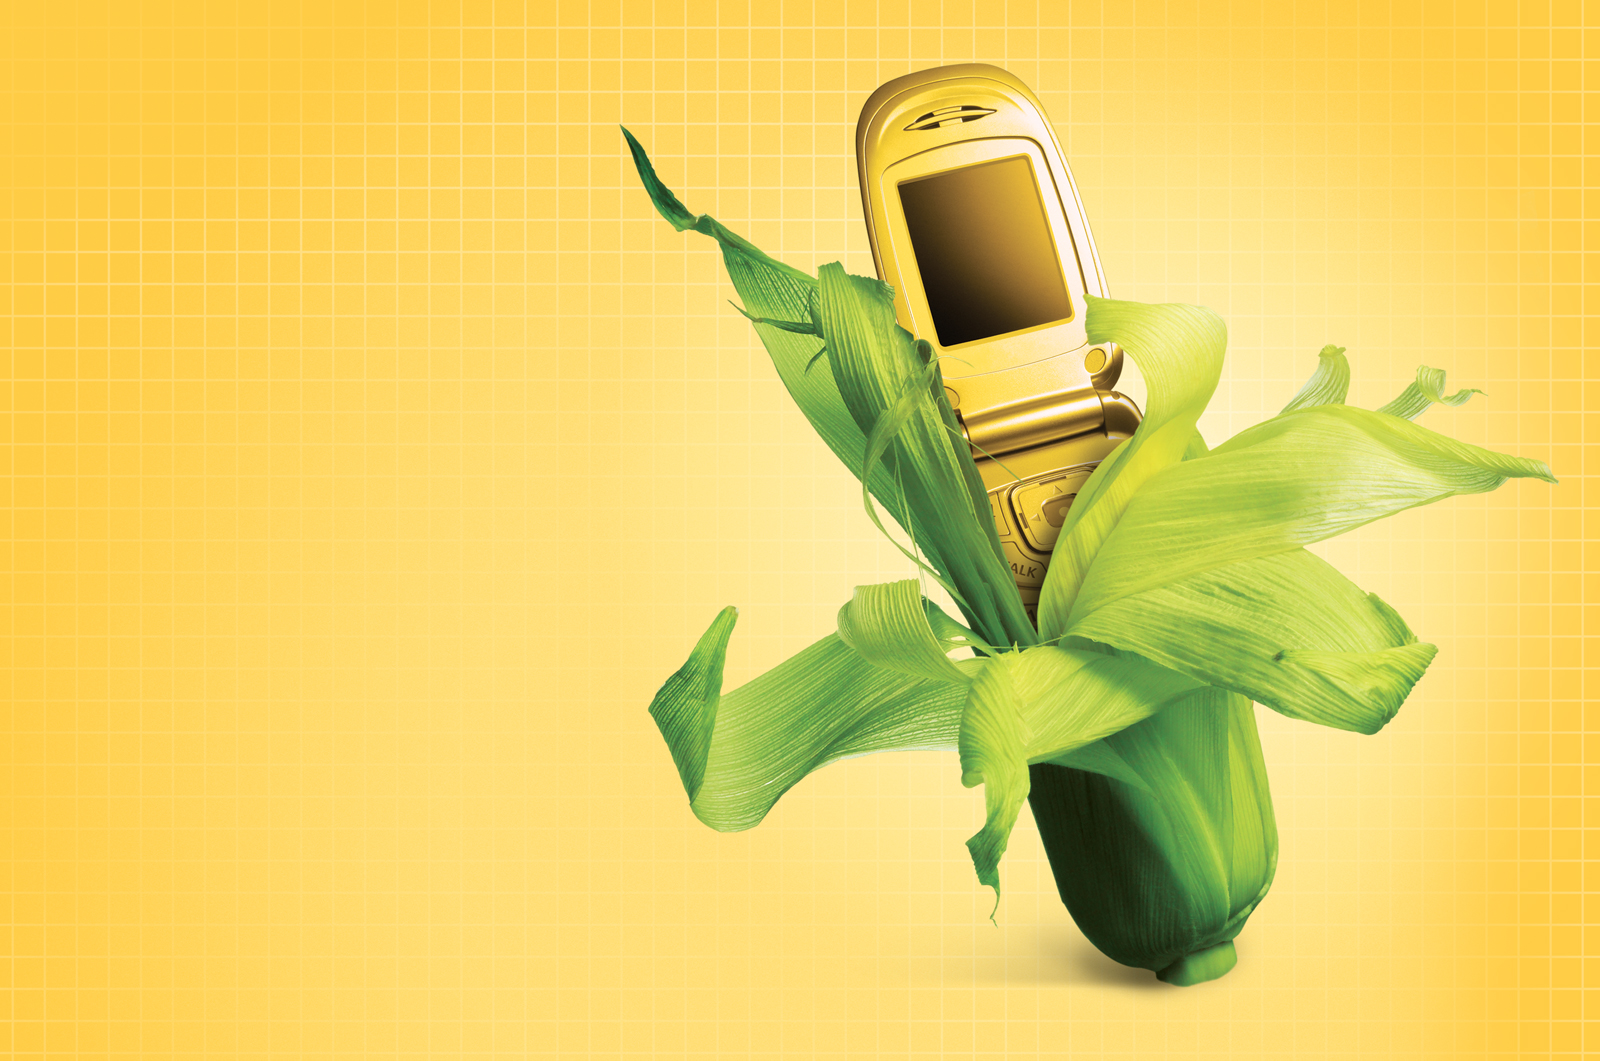 A corn stalk with a yellow tinted cell phone growing out of the green stalk.